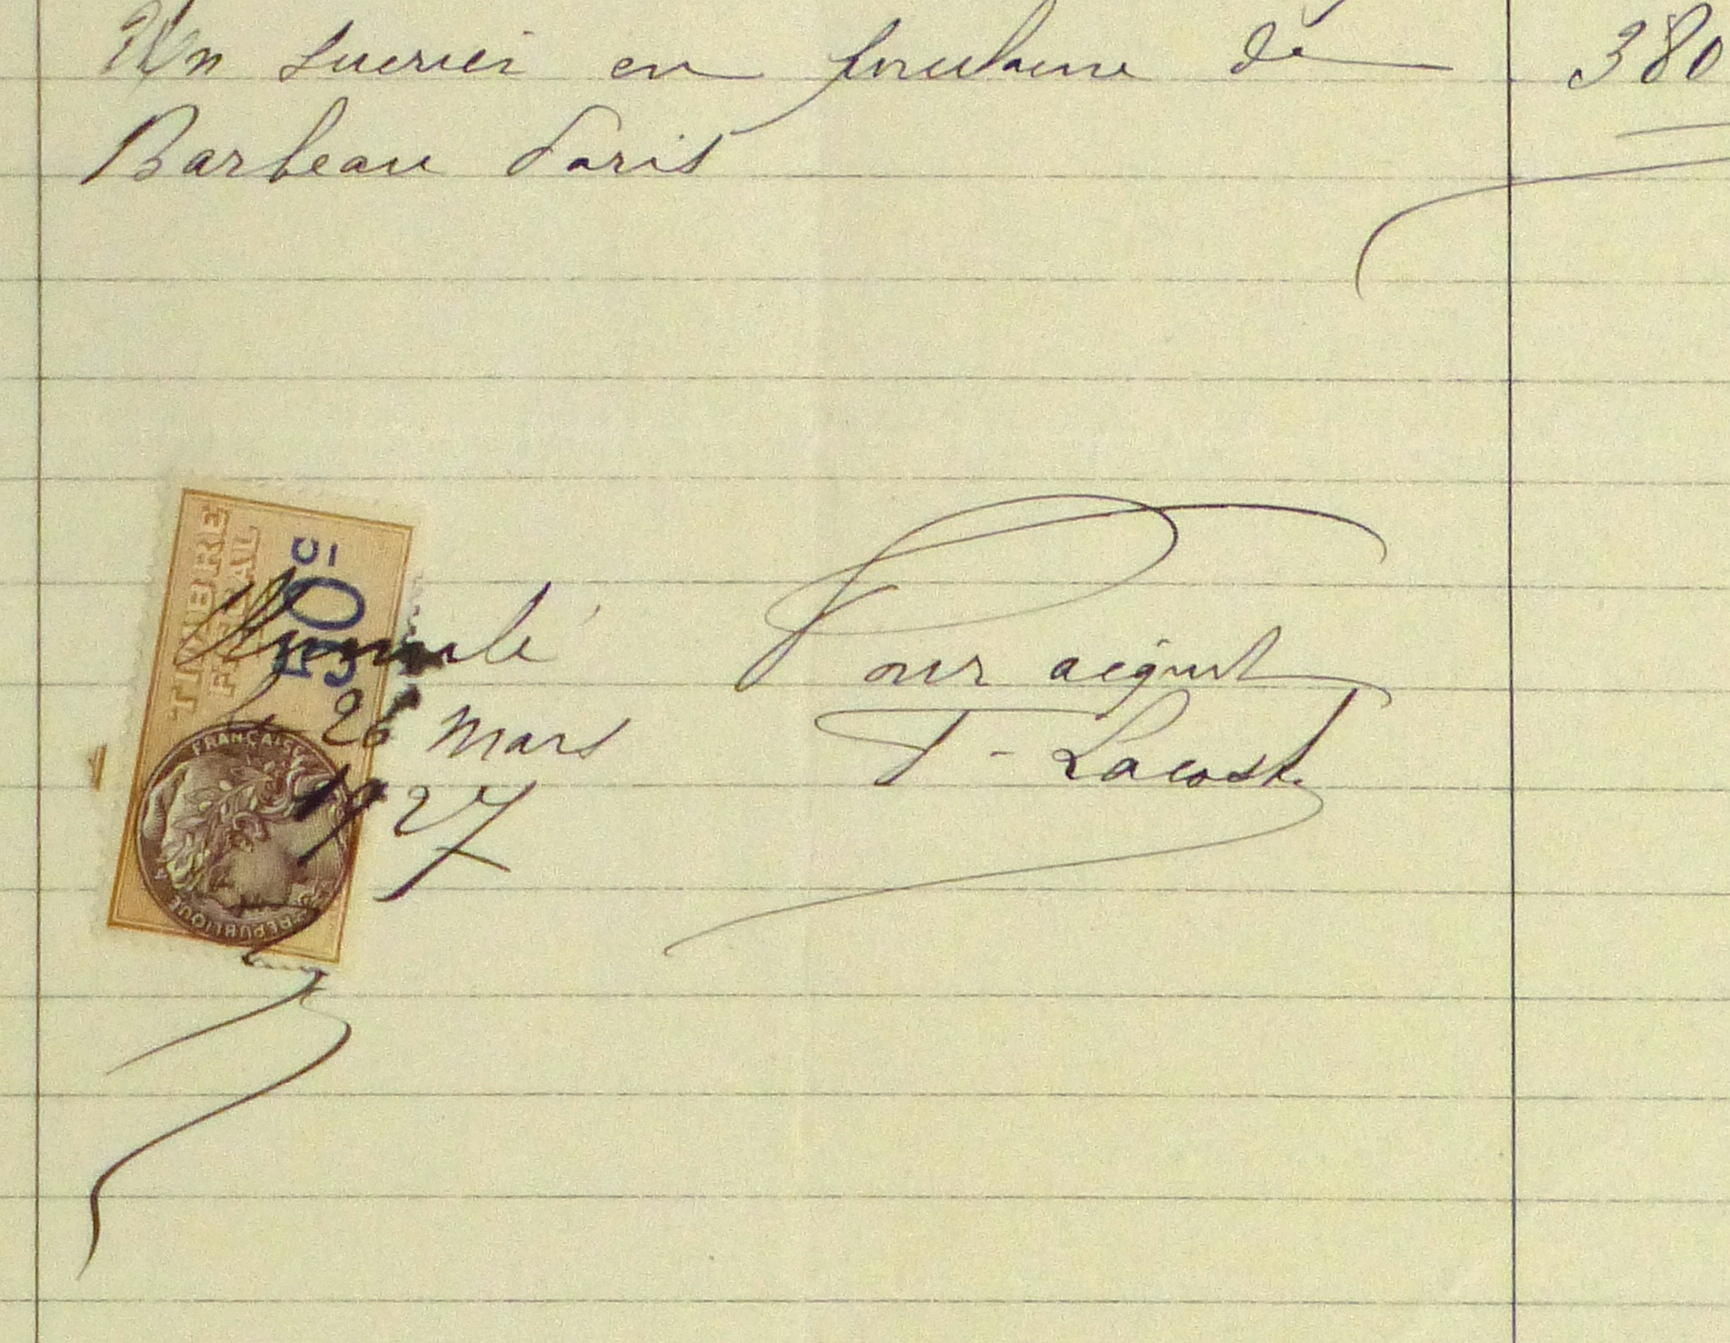 Duchess of Maillé Art Receipt, 1927-detail-10562M